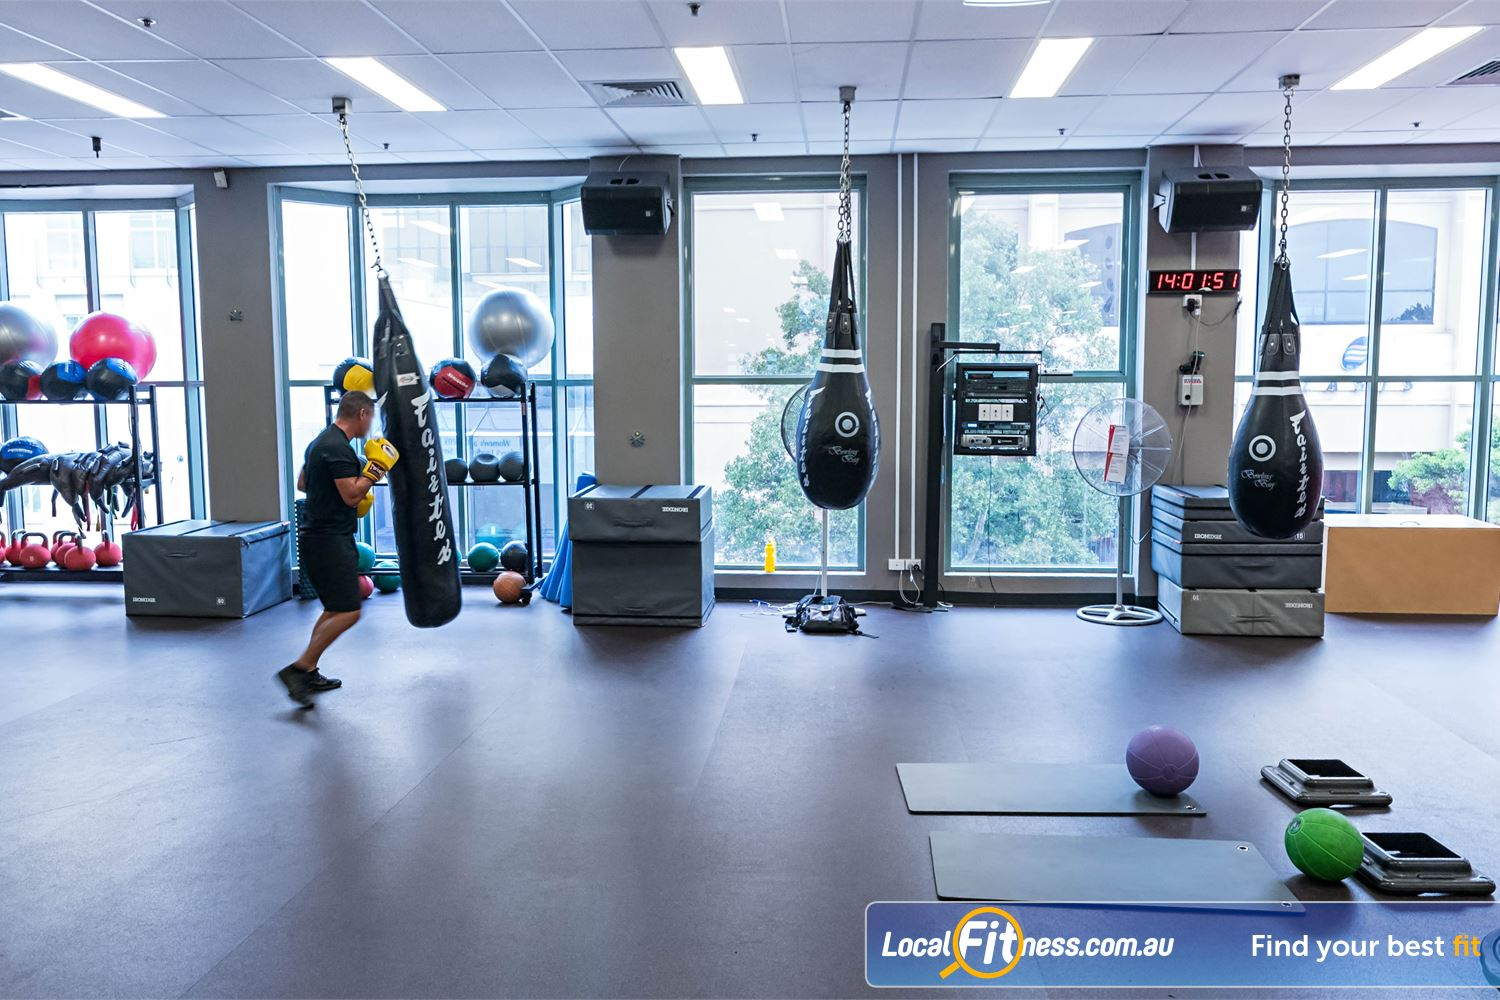 Fitness First Platinum Spring St Near Charing Cross The dedicated Bondi boxing space in our top level freestyle area.